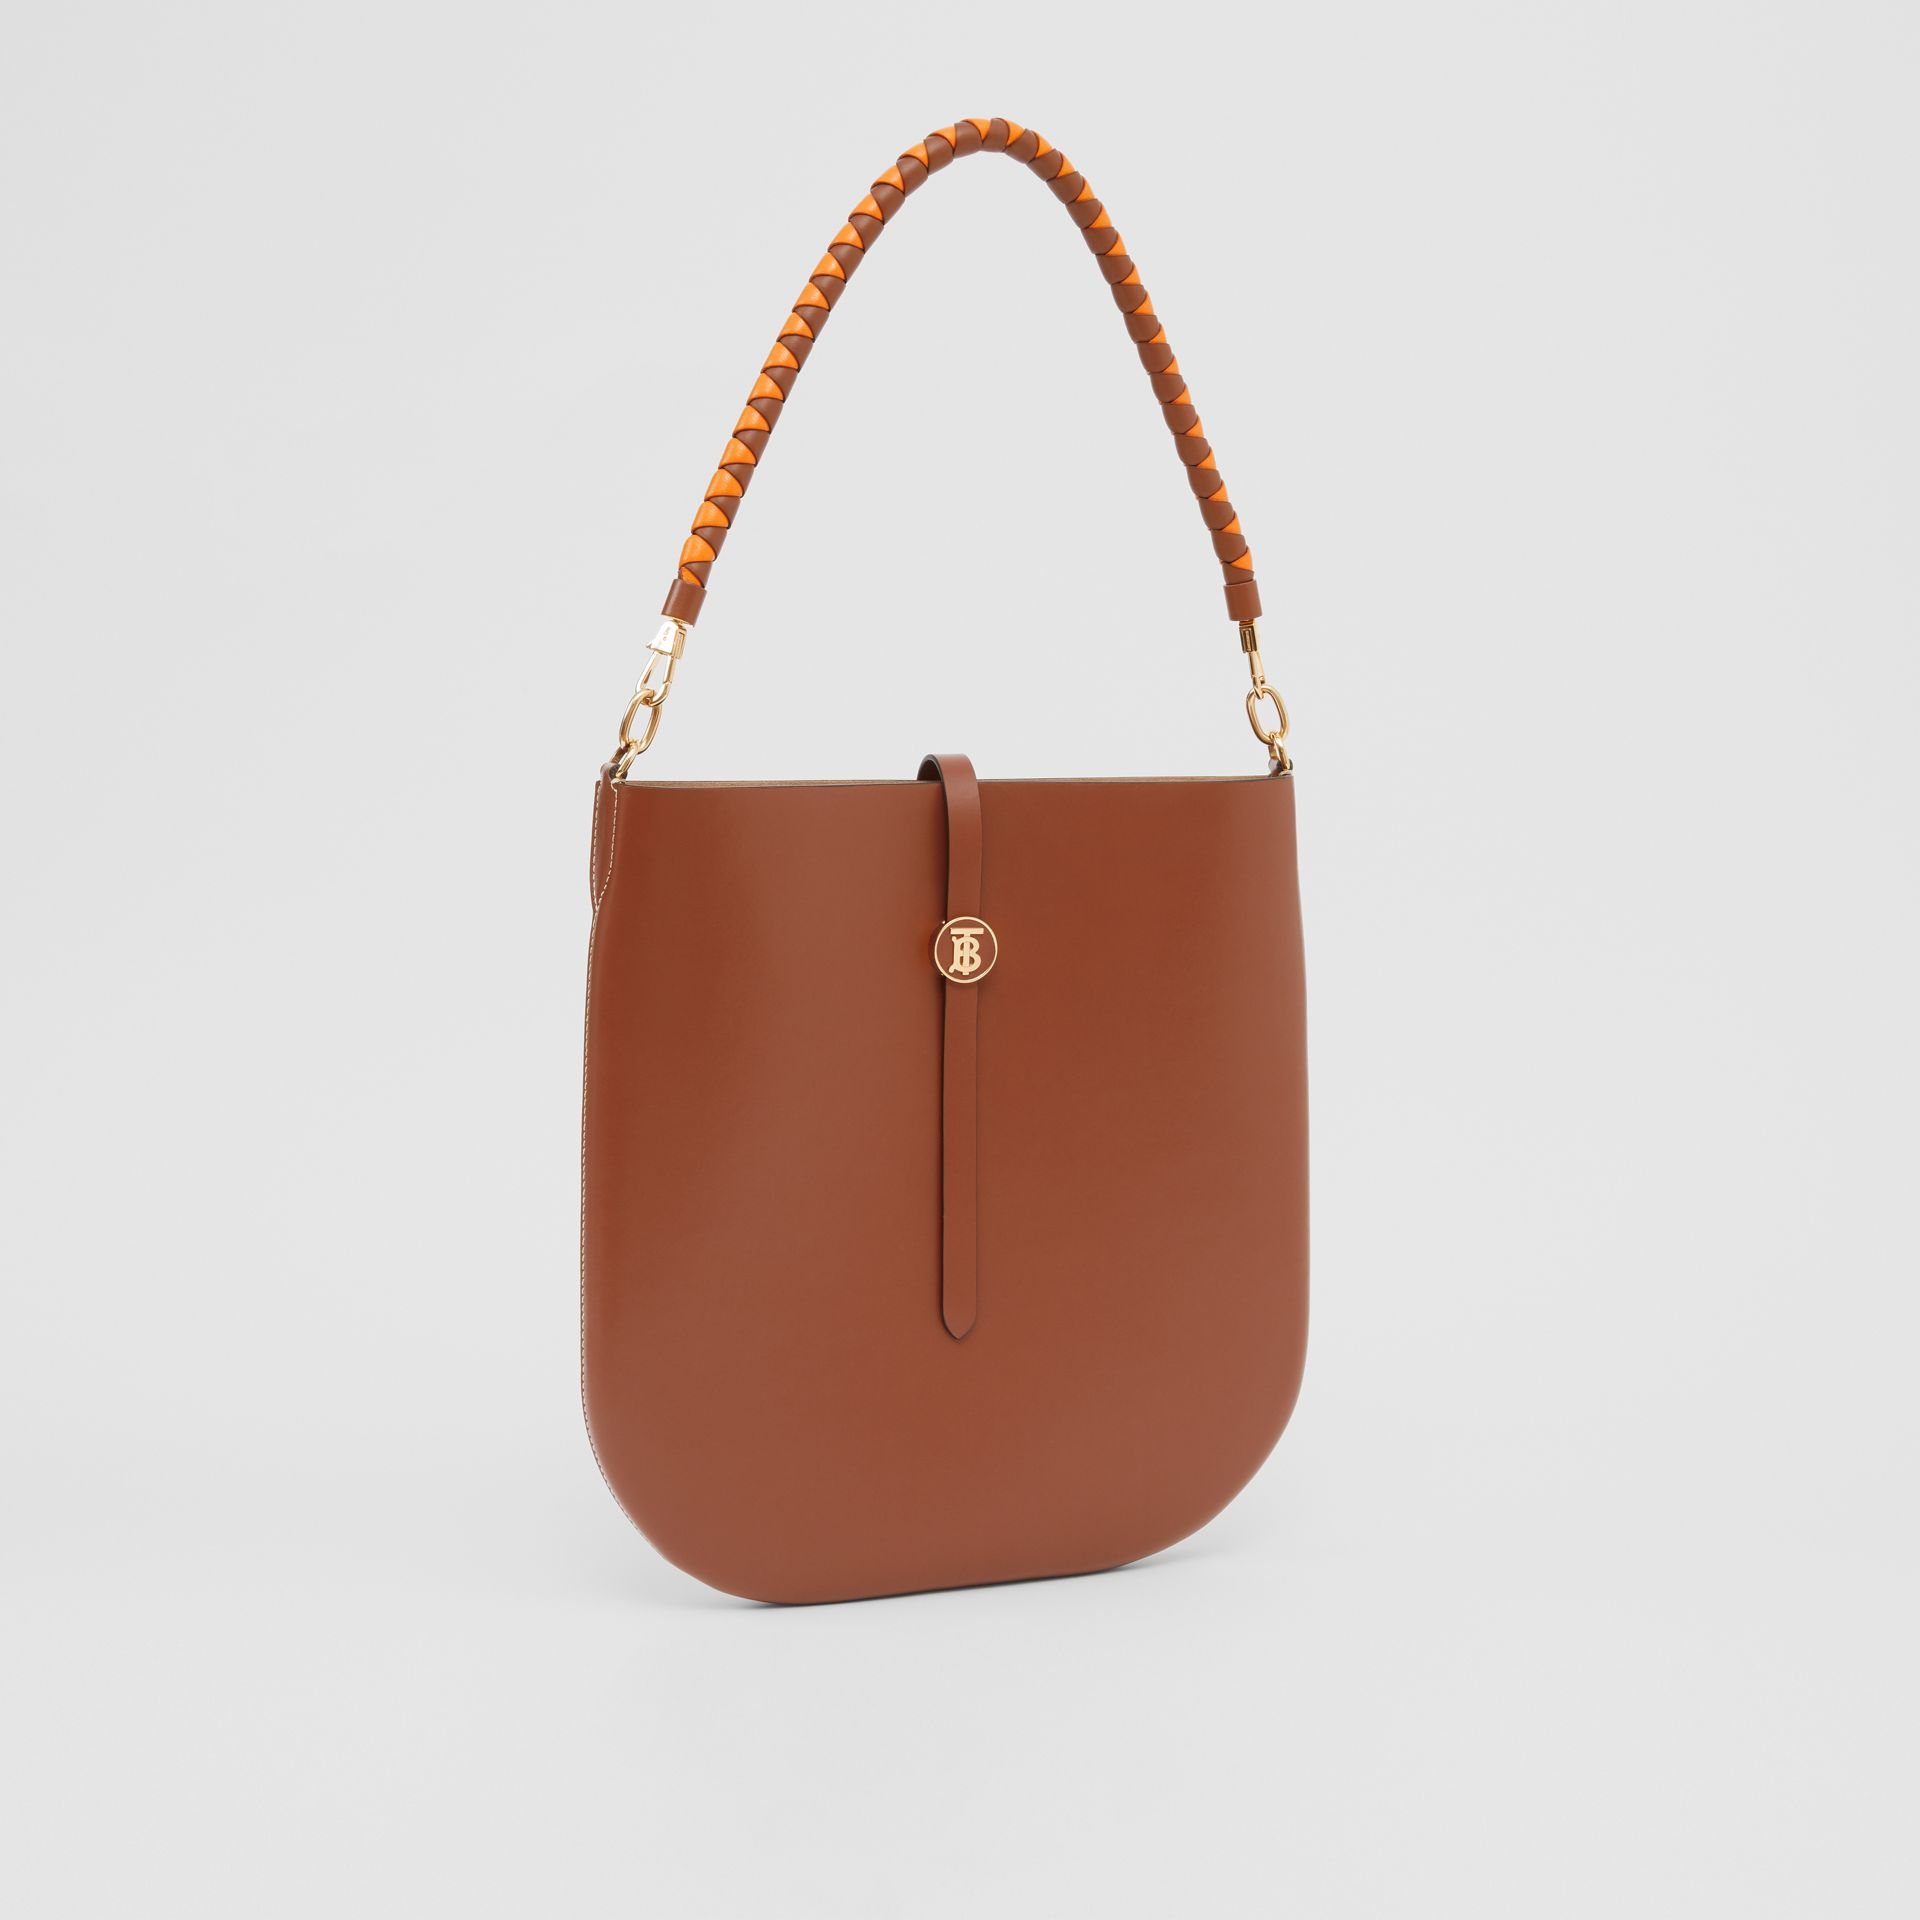 Leather Anne Bag in Tan - Women | Burberry Australia - gallery image 6